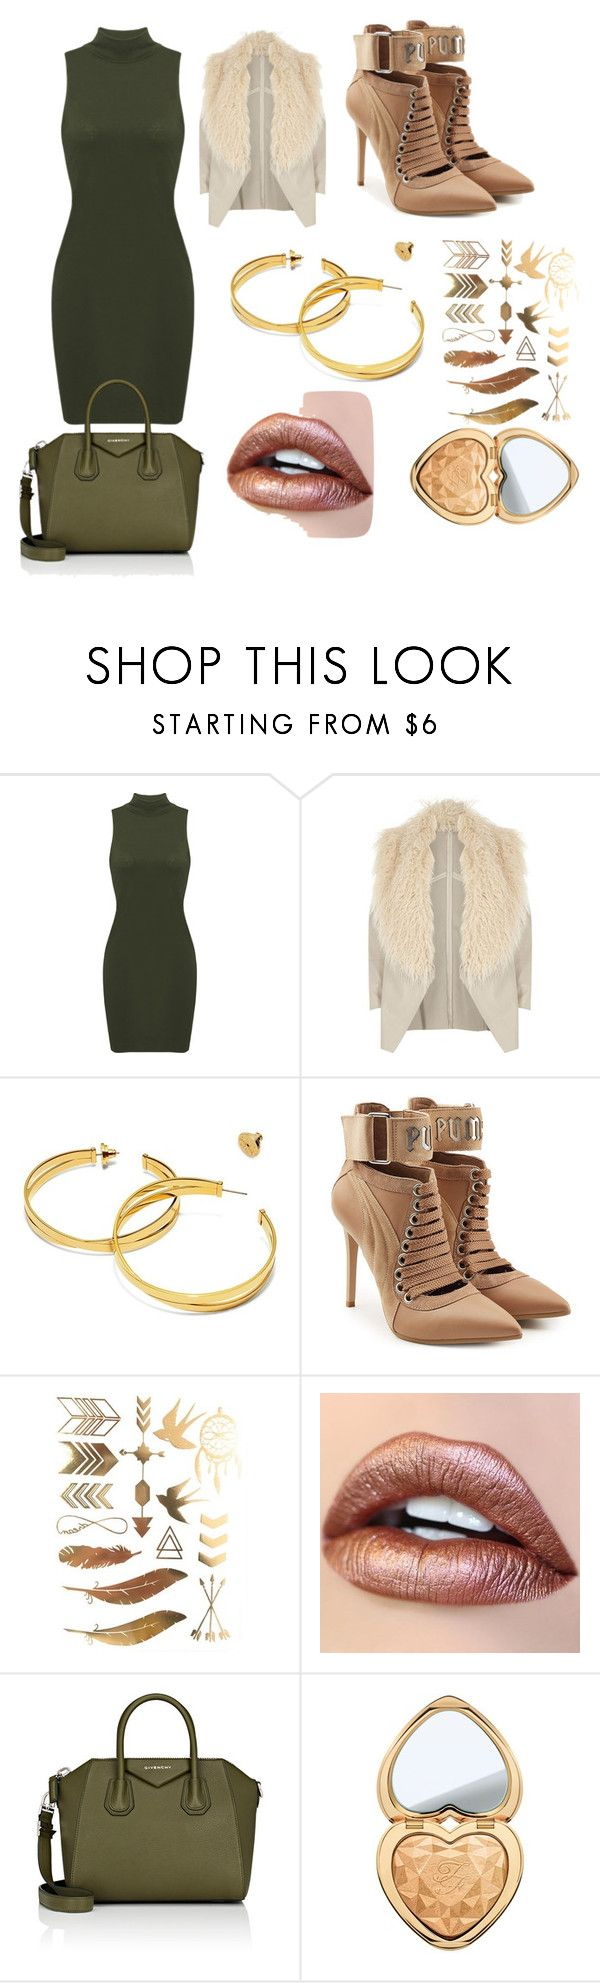 """DE MODA"" by marguerite-dillworth on Polyvore featuring River Island, Tory Burch, Puma, Givenchy and Too Faced Cosmetics"